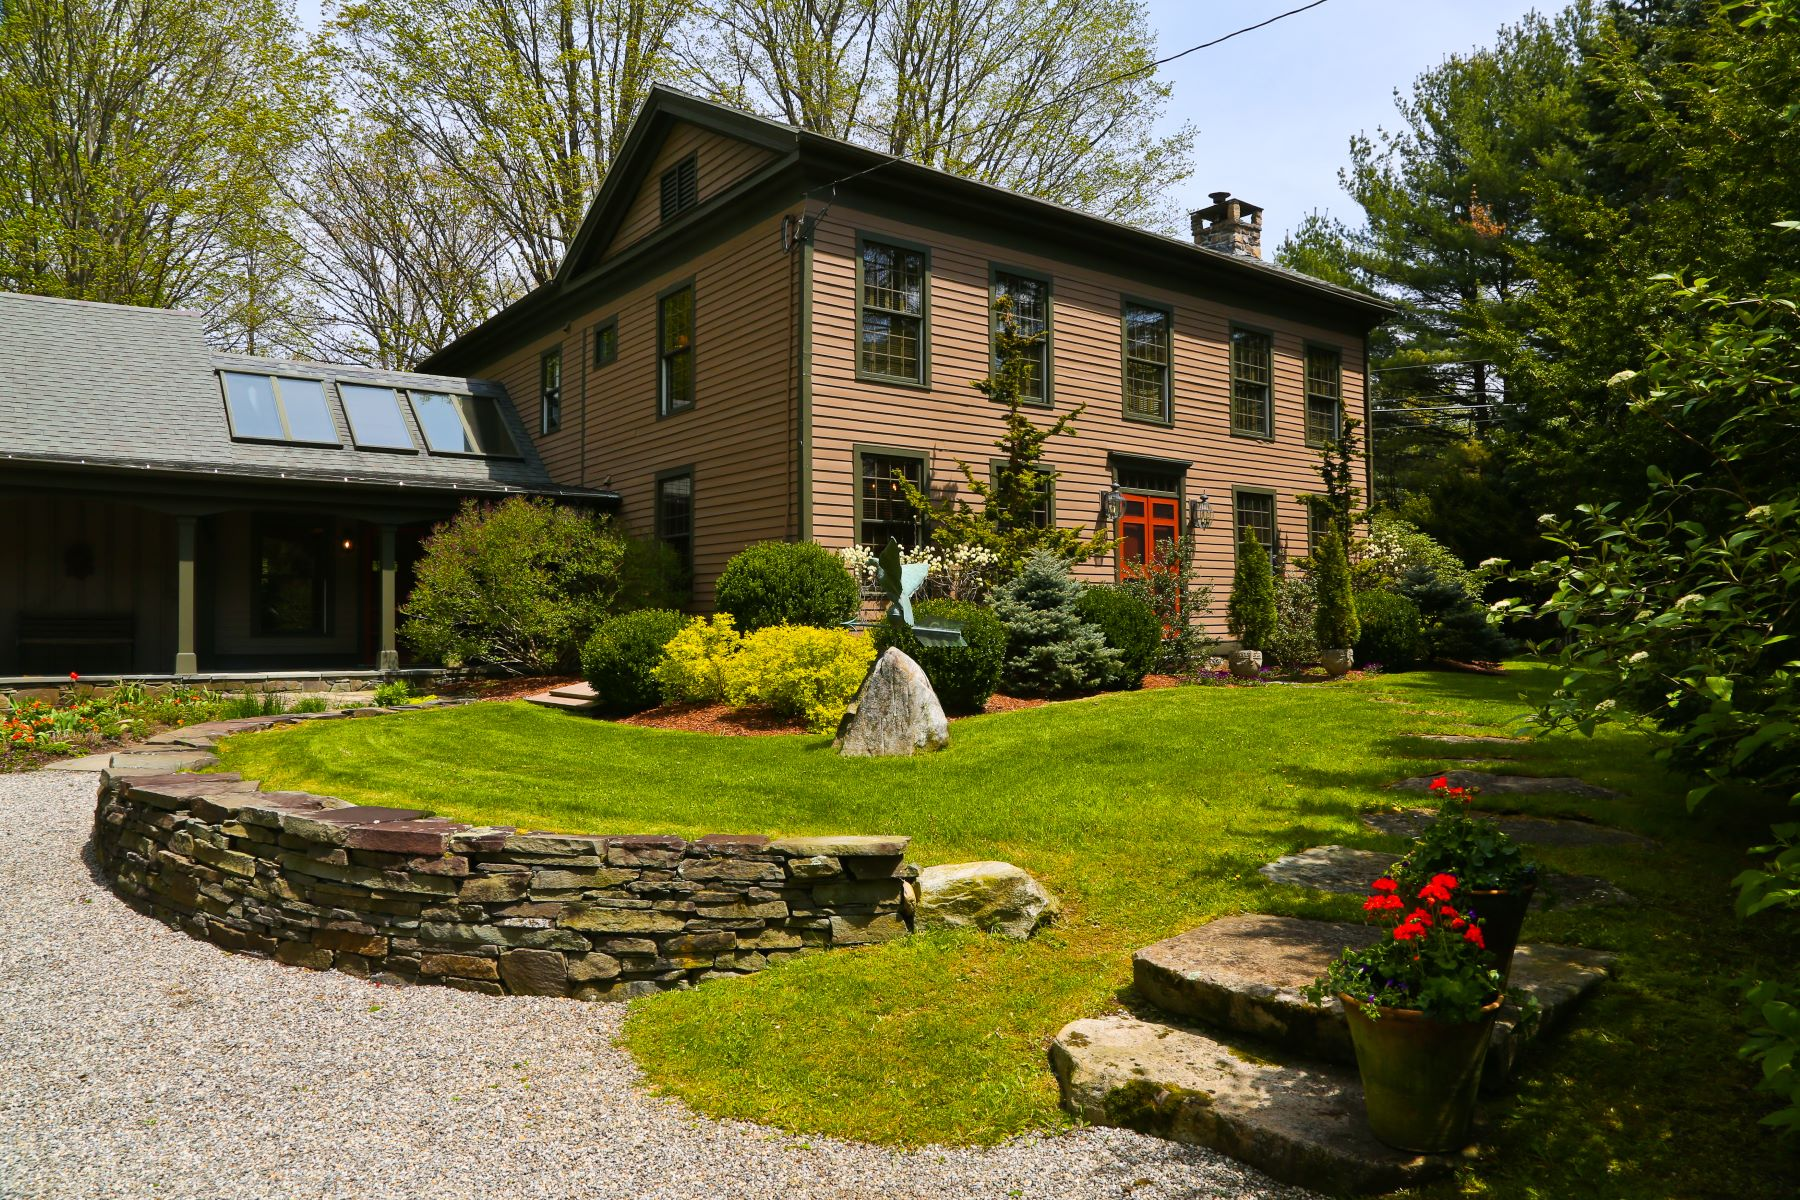 Villa per Vendita alle ore Turn-key, Historic Colonial in Magical Setting 0 & 399 State Rd Great Barrington, Massachusetts, 01230 Stati Uniti